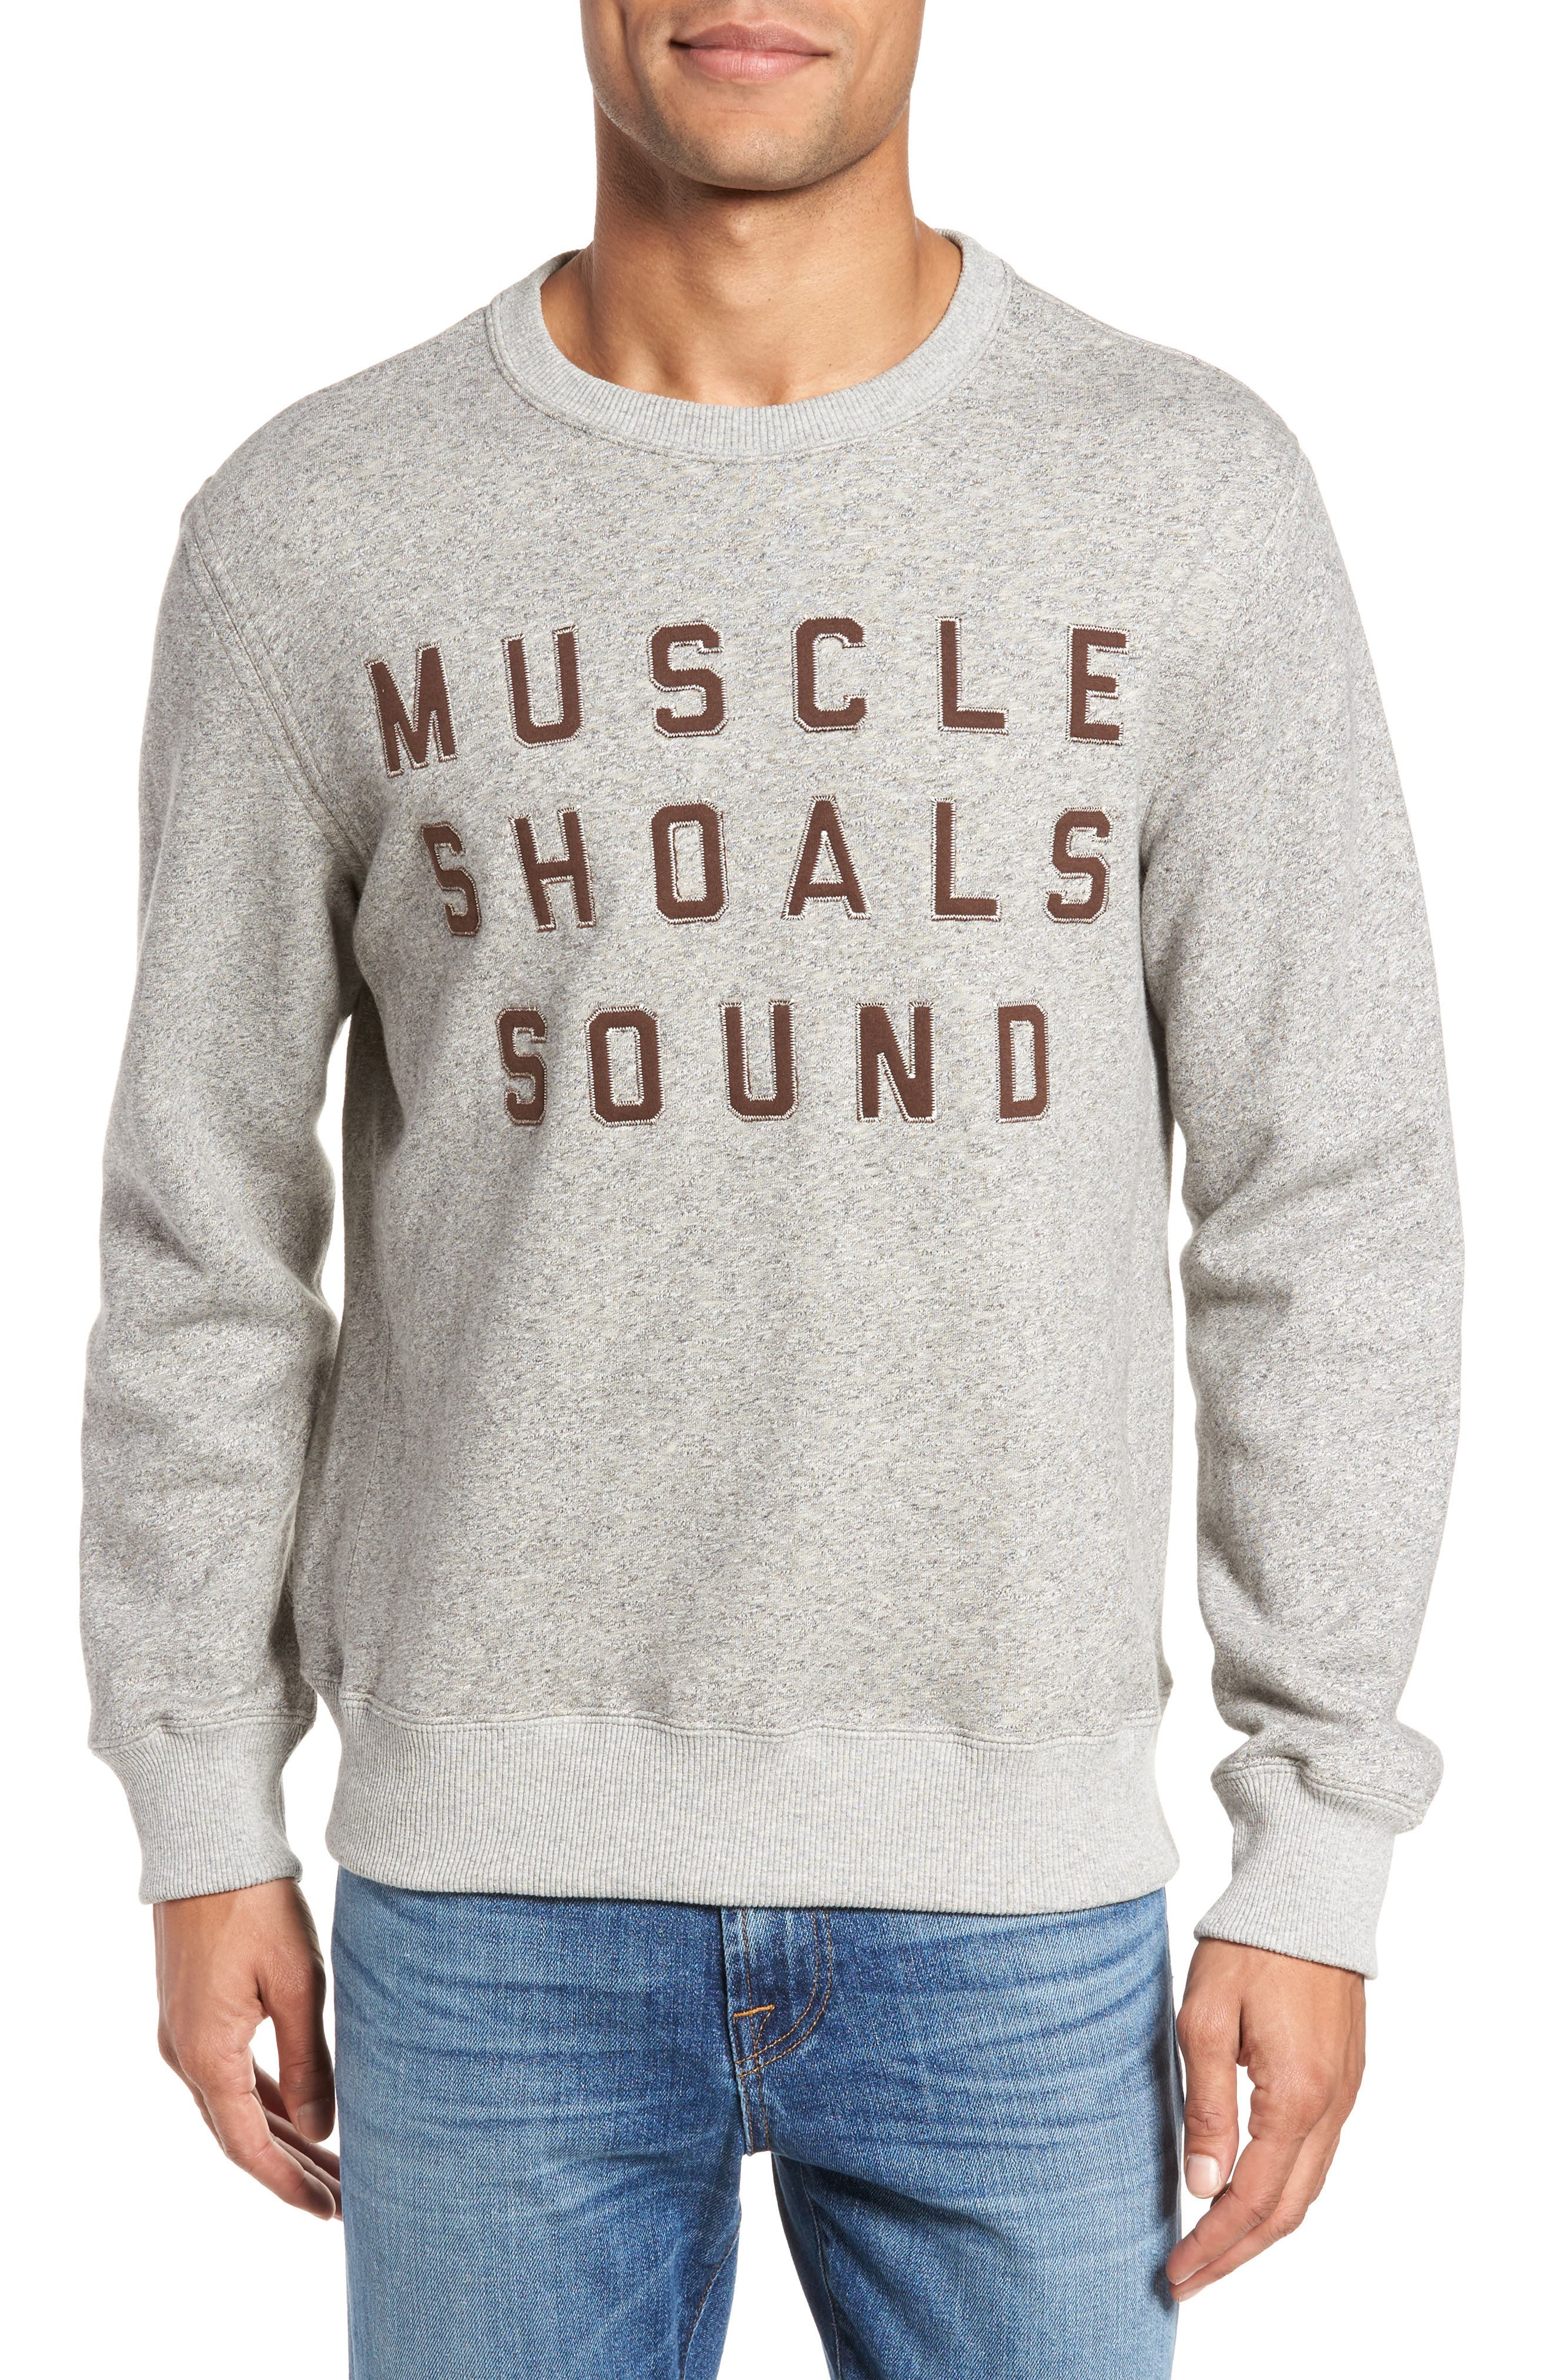 Muscle Shoals Sound Pullover,                             Main thumbnail 1, color,